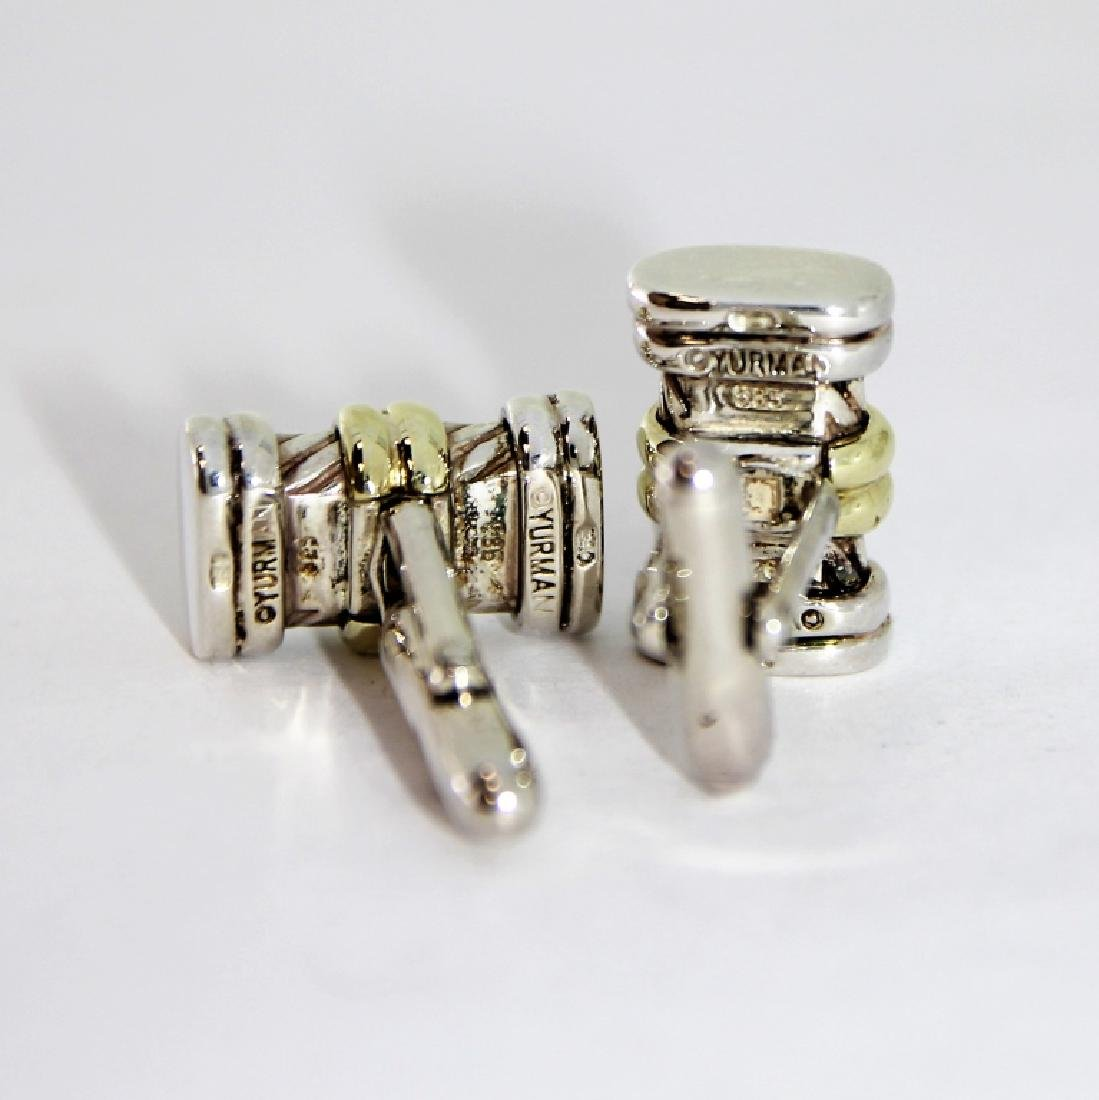 David Yurman 14K Gold S.S. Cable Cufflinks - 2